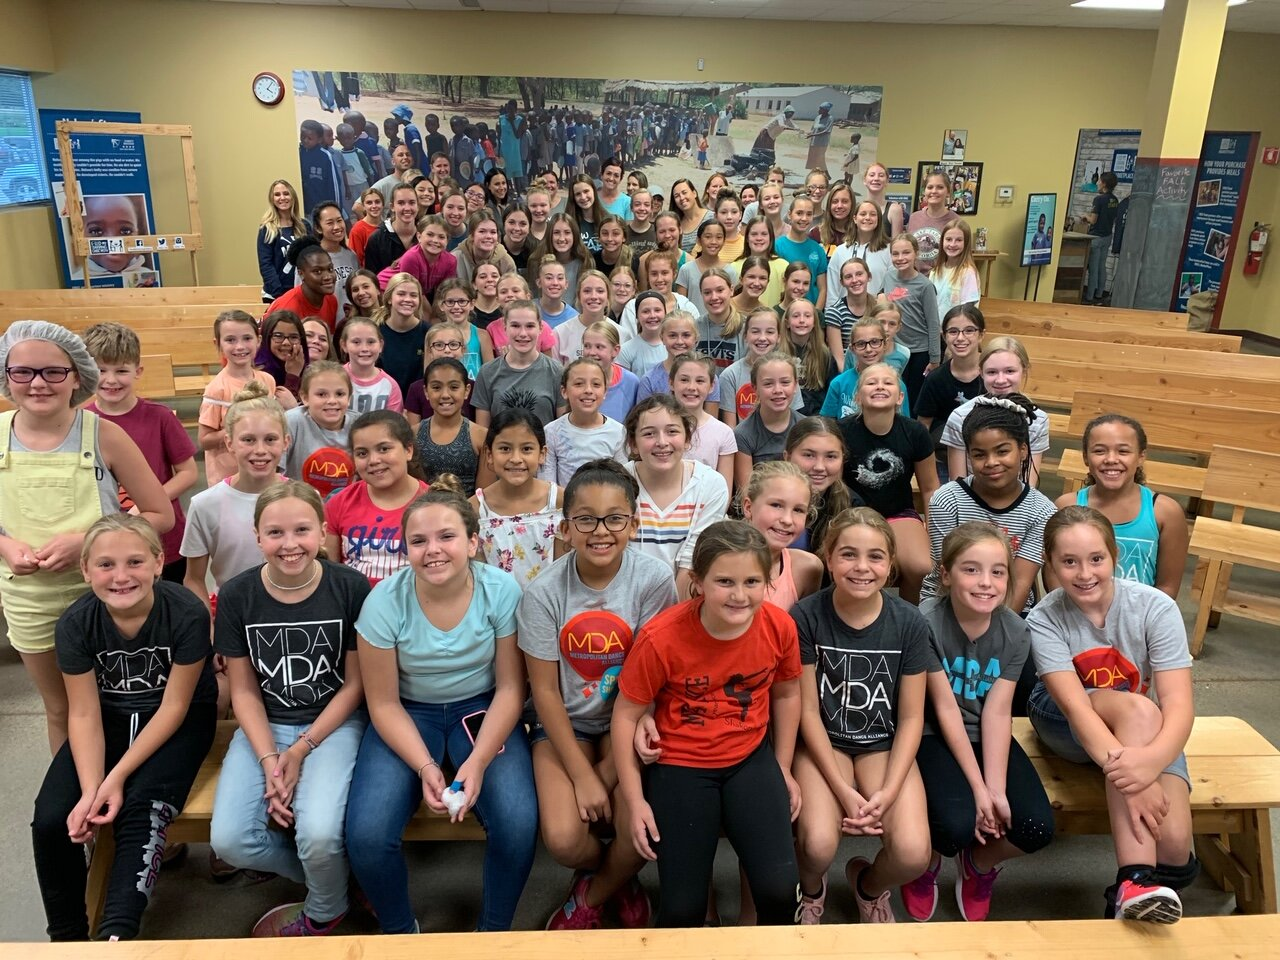 To kick off our 2019-20 Dance Season, MDA team members volunteers at  Feed My Starving Children . We had 120 dancers, parents and teachers take time out of their Saturday to volunteer at this event! At MDA we love providing opportunities for our students to give back and we are so grateful that so many of our families value this as well! MDA volunteers packed meals to be sent to Haiti. In just under 2 hours, over 39,000 meals were packed, which can feed 109 kids for 1 year!